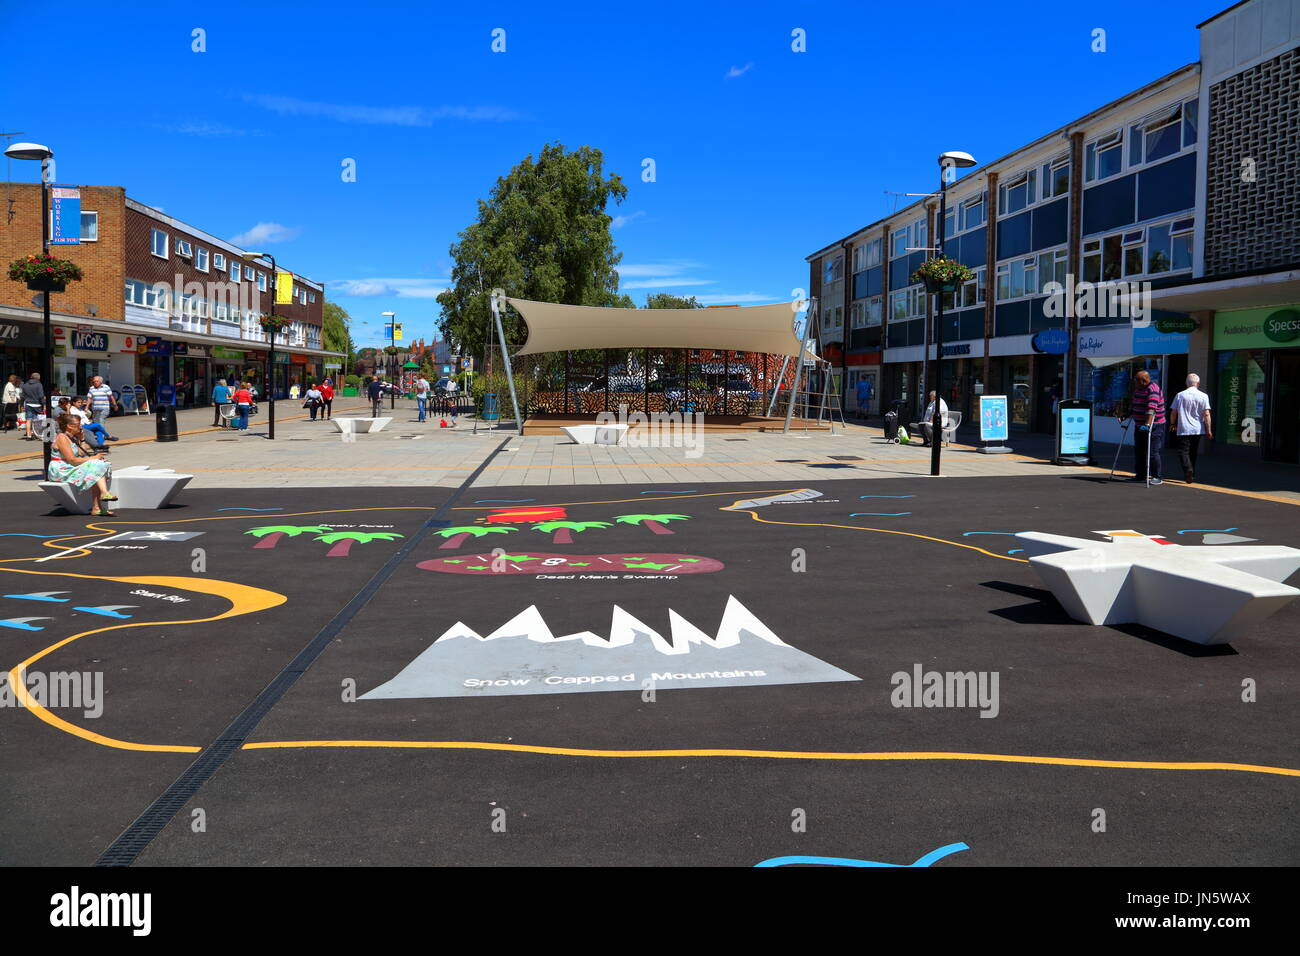 The new play area with its new protected stage area in the middle of the shopping center in Woodley town on a clear sunny day. - Stock Image